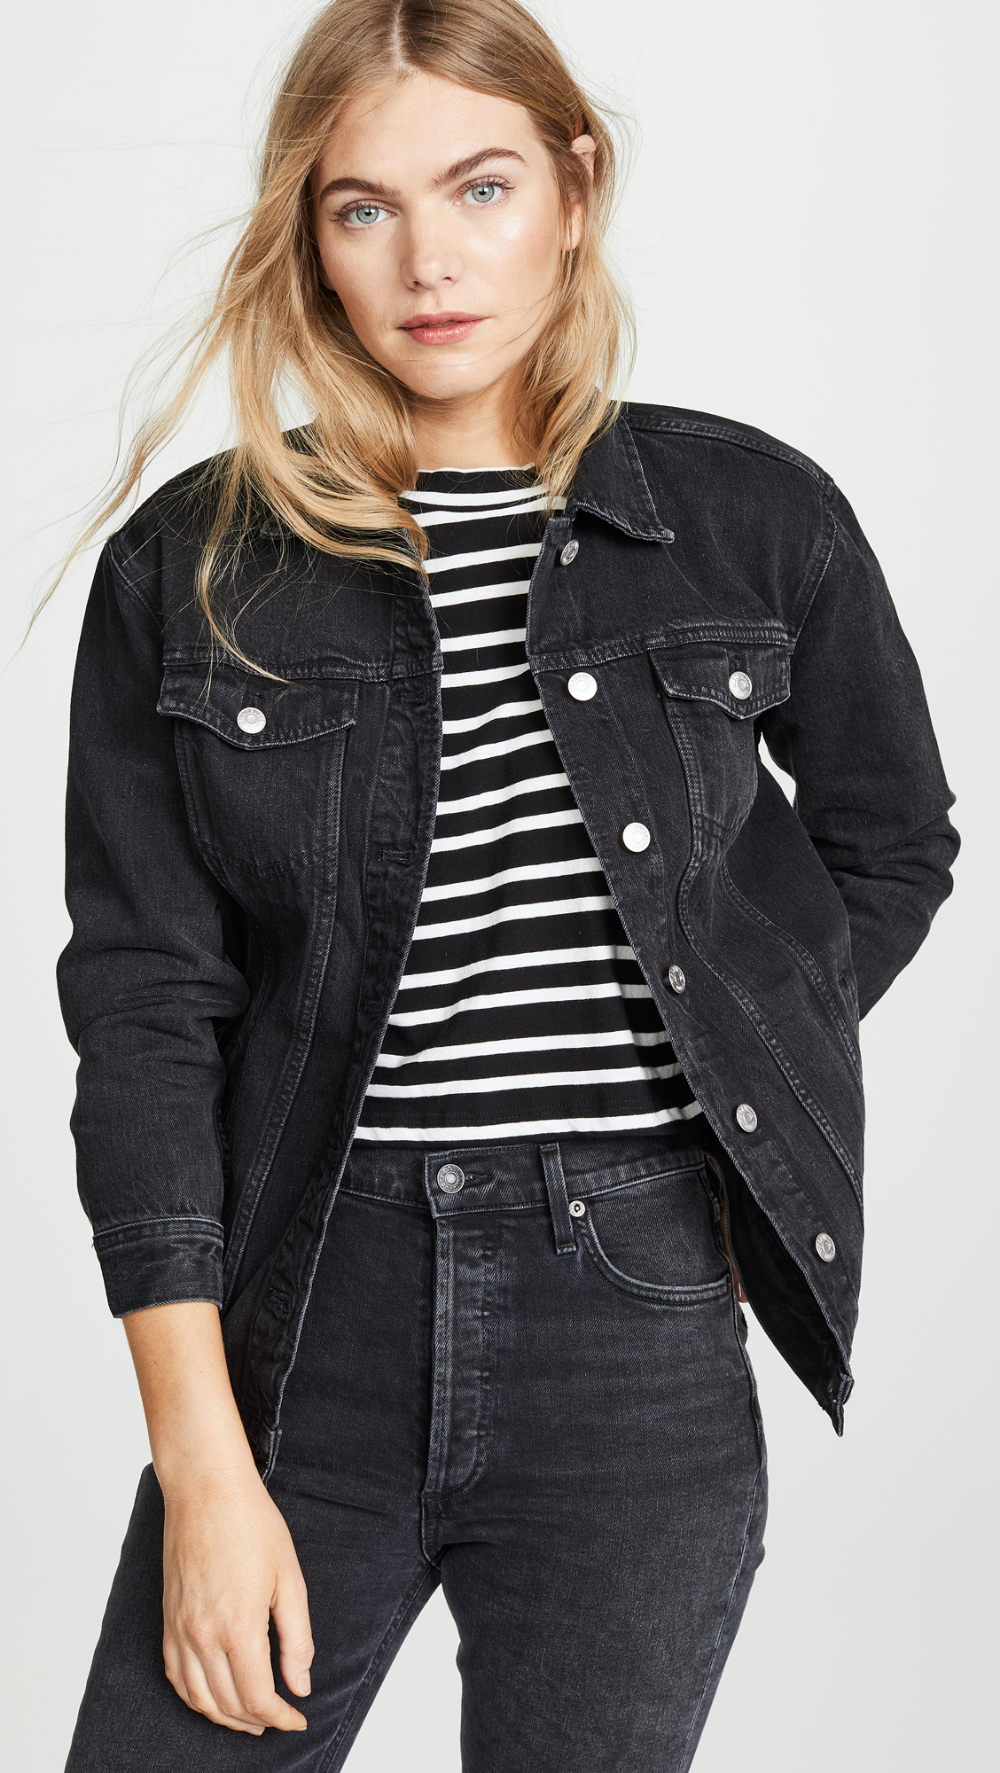 Pin By Hilary Green On I Miei Salvataggi In 2021 Black Denim Jacket Outfit Black Jean Jacket Outfit Oversized Jean Jacket [ 1773 x 1000 Pixel ]